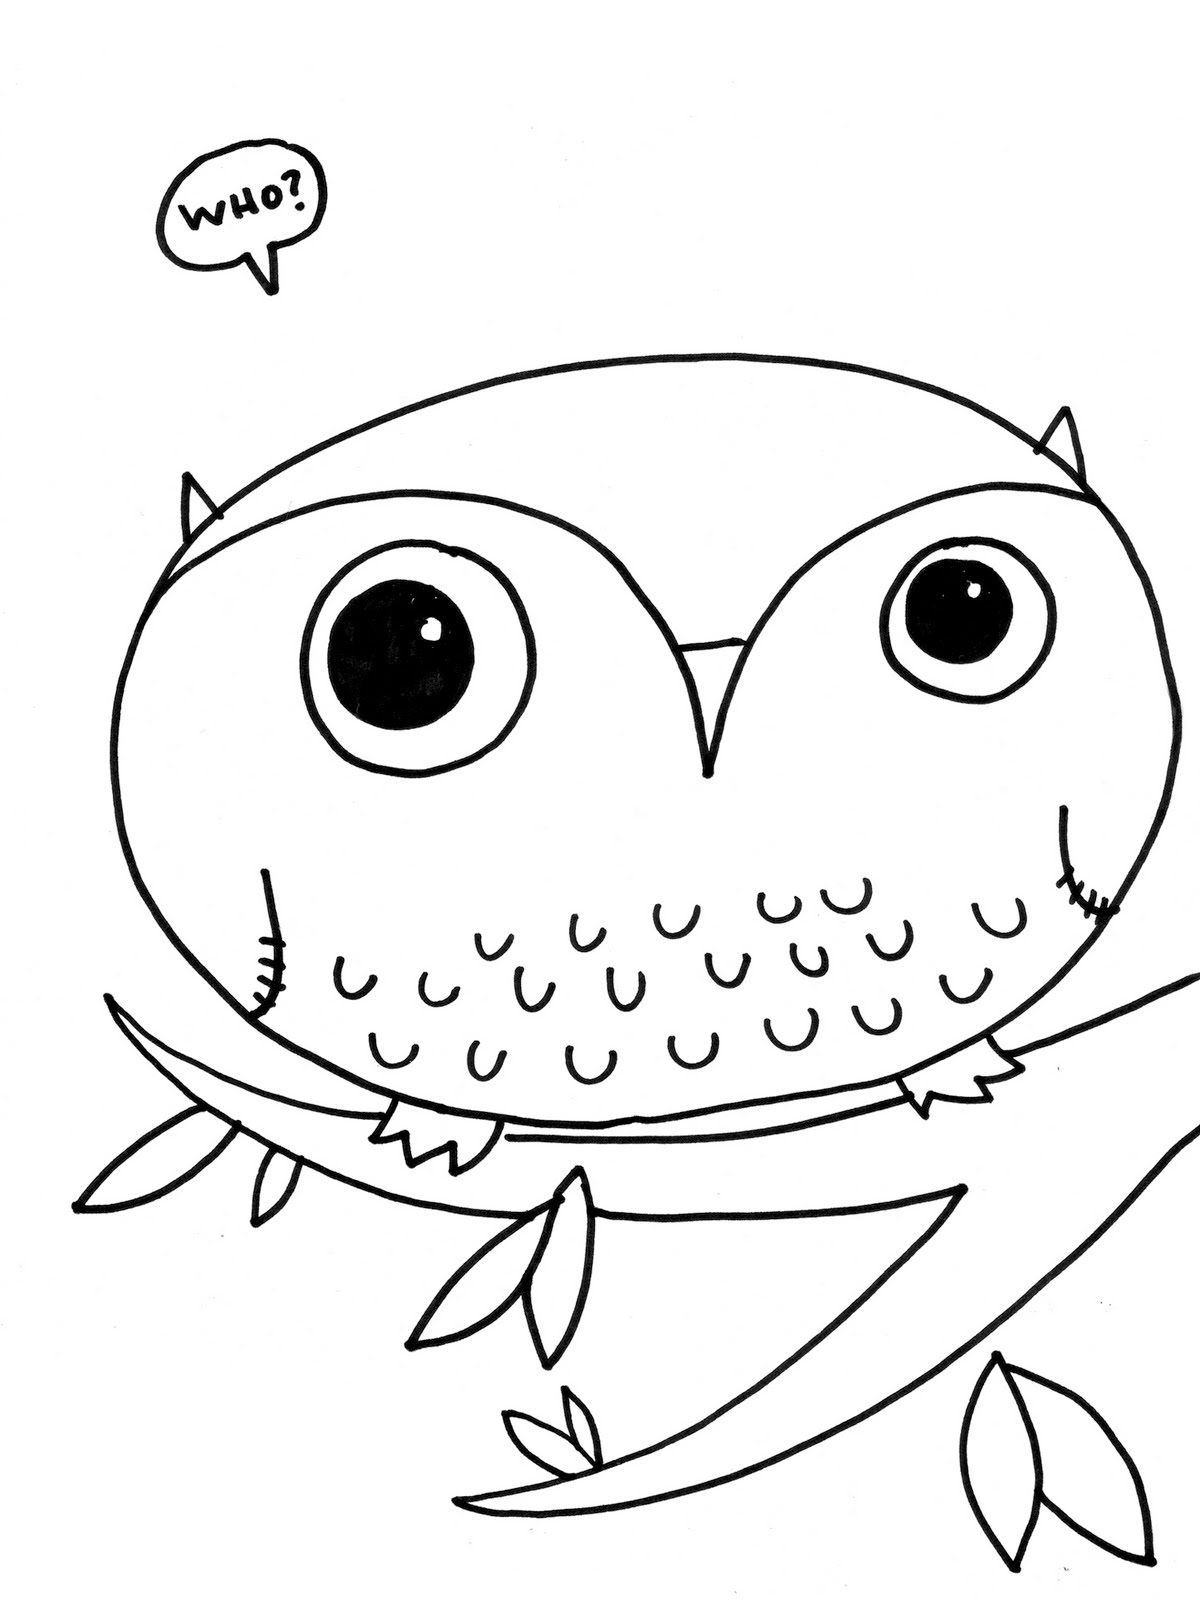 Free coloring pages com printable - Owl Coloring Pages Free